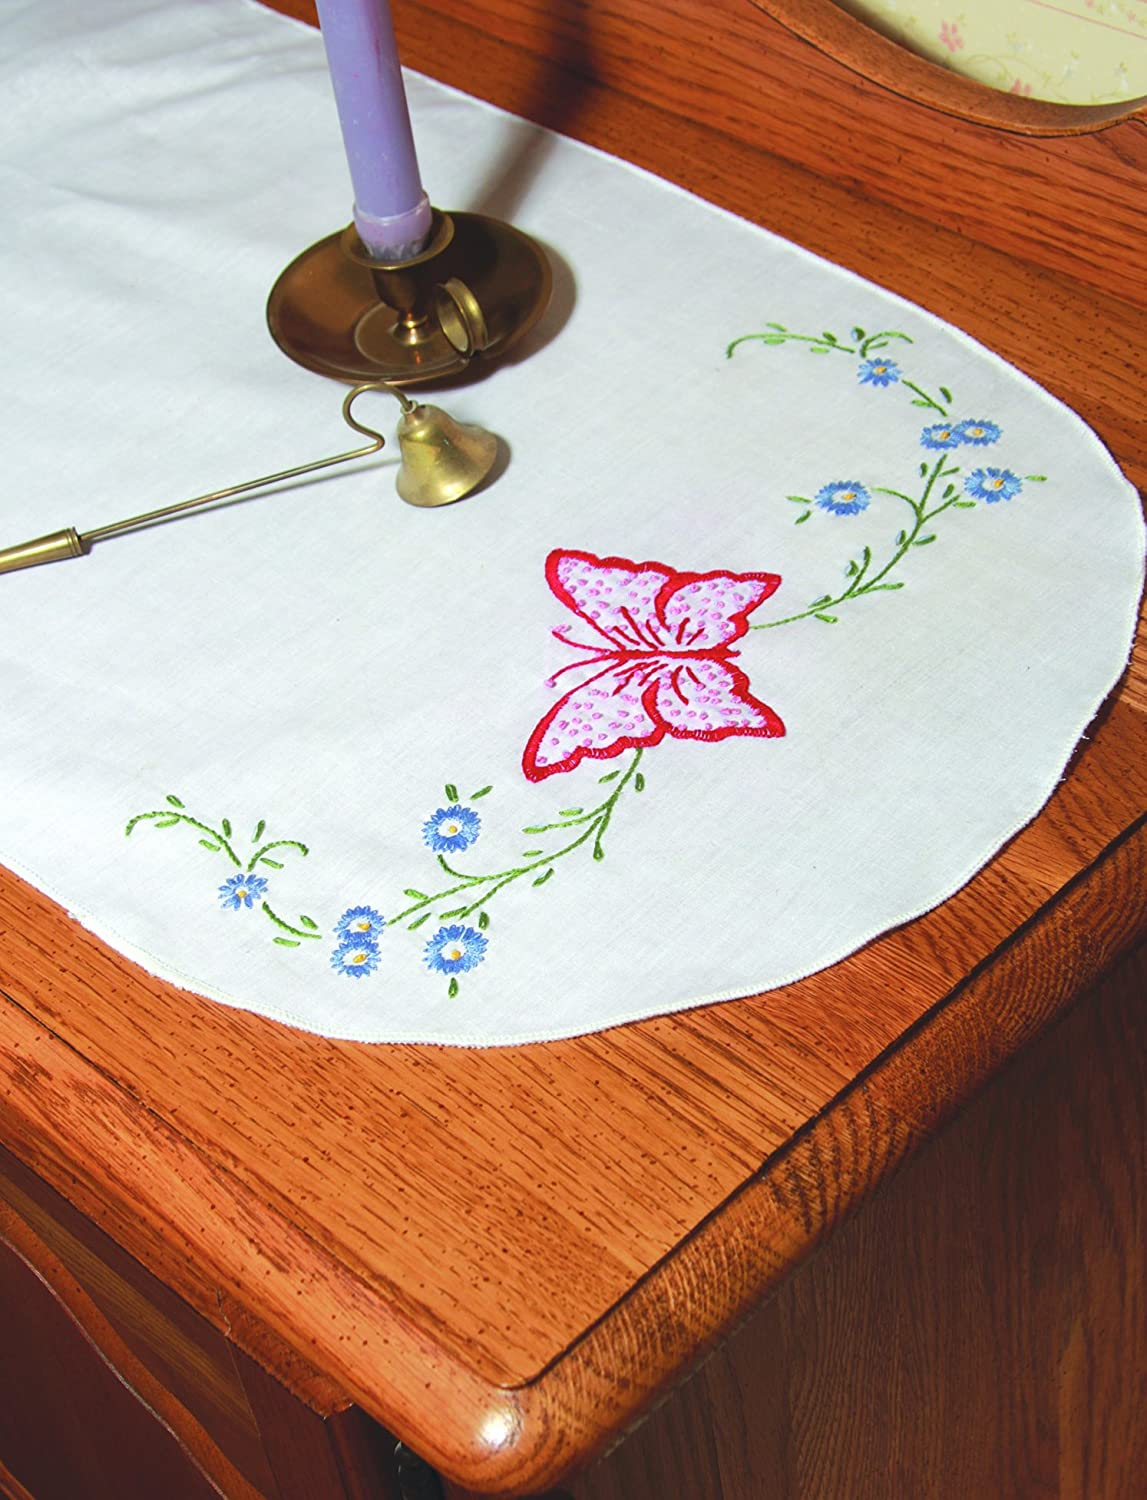 Fairway 16239 Dresser Scarf, Butterfly Design, White, Perle Edge